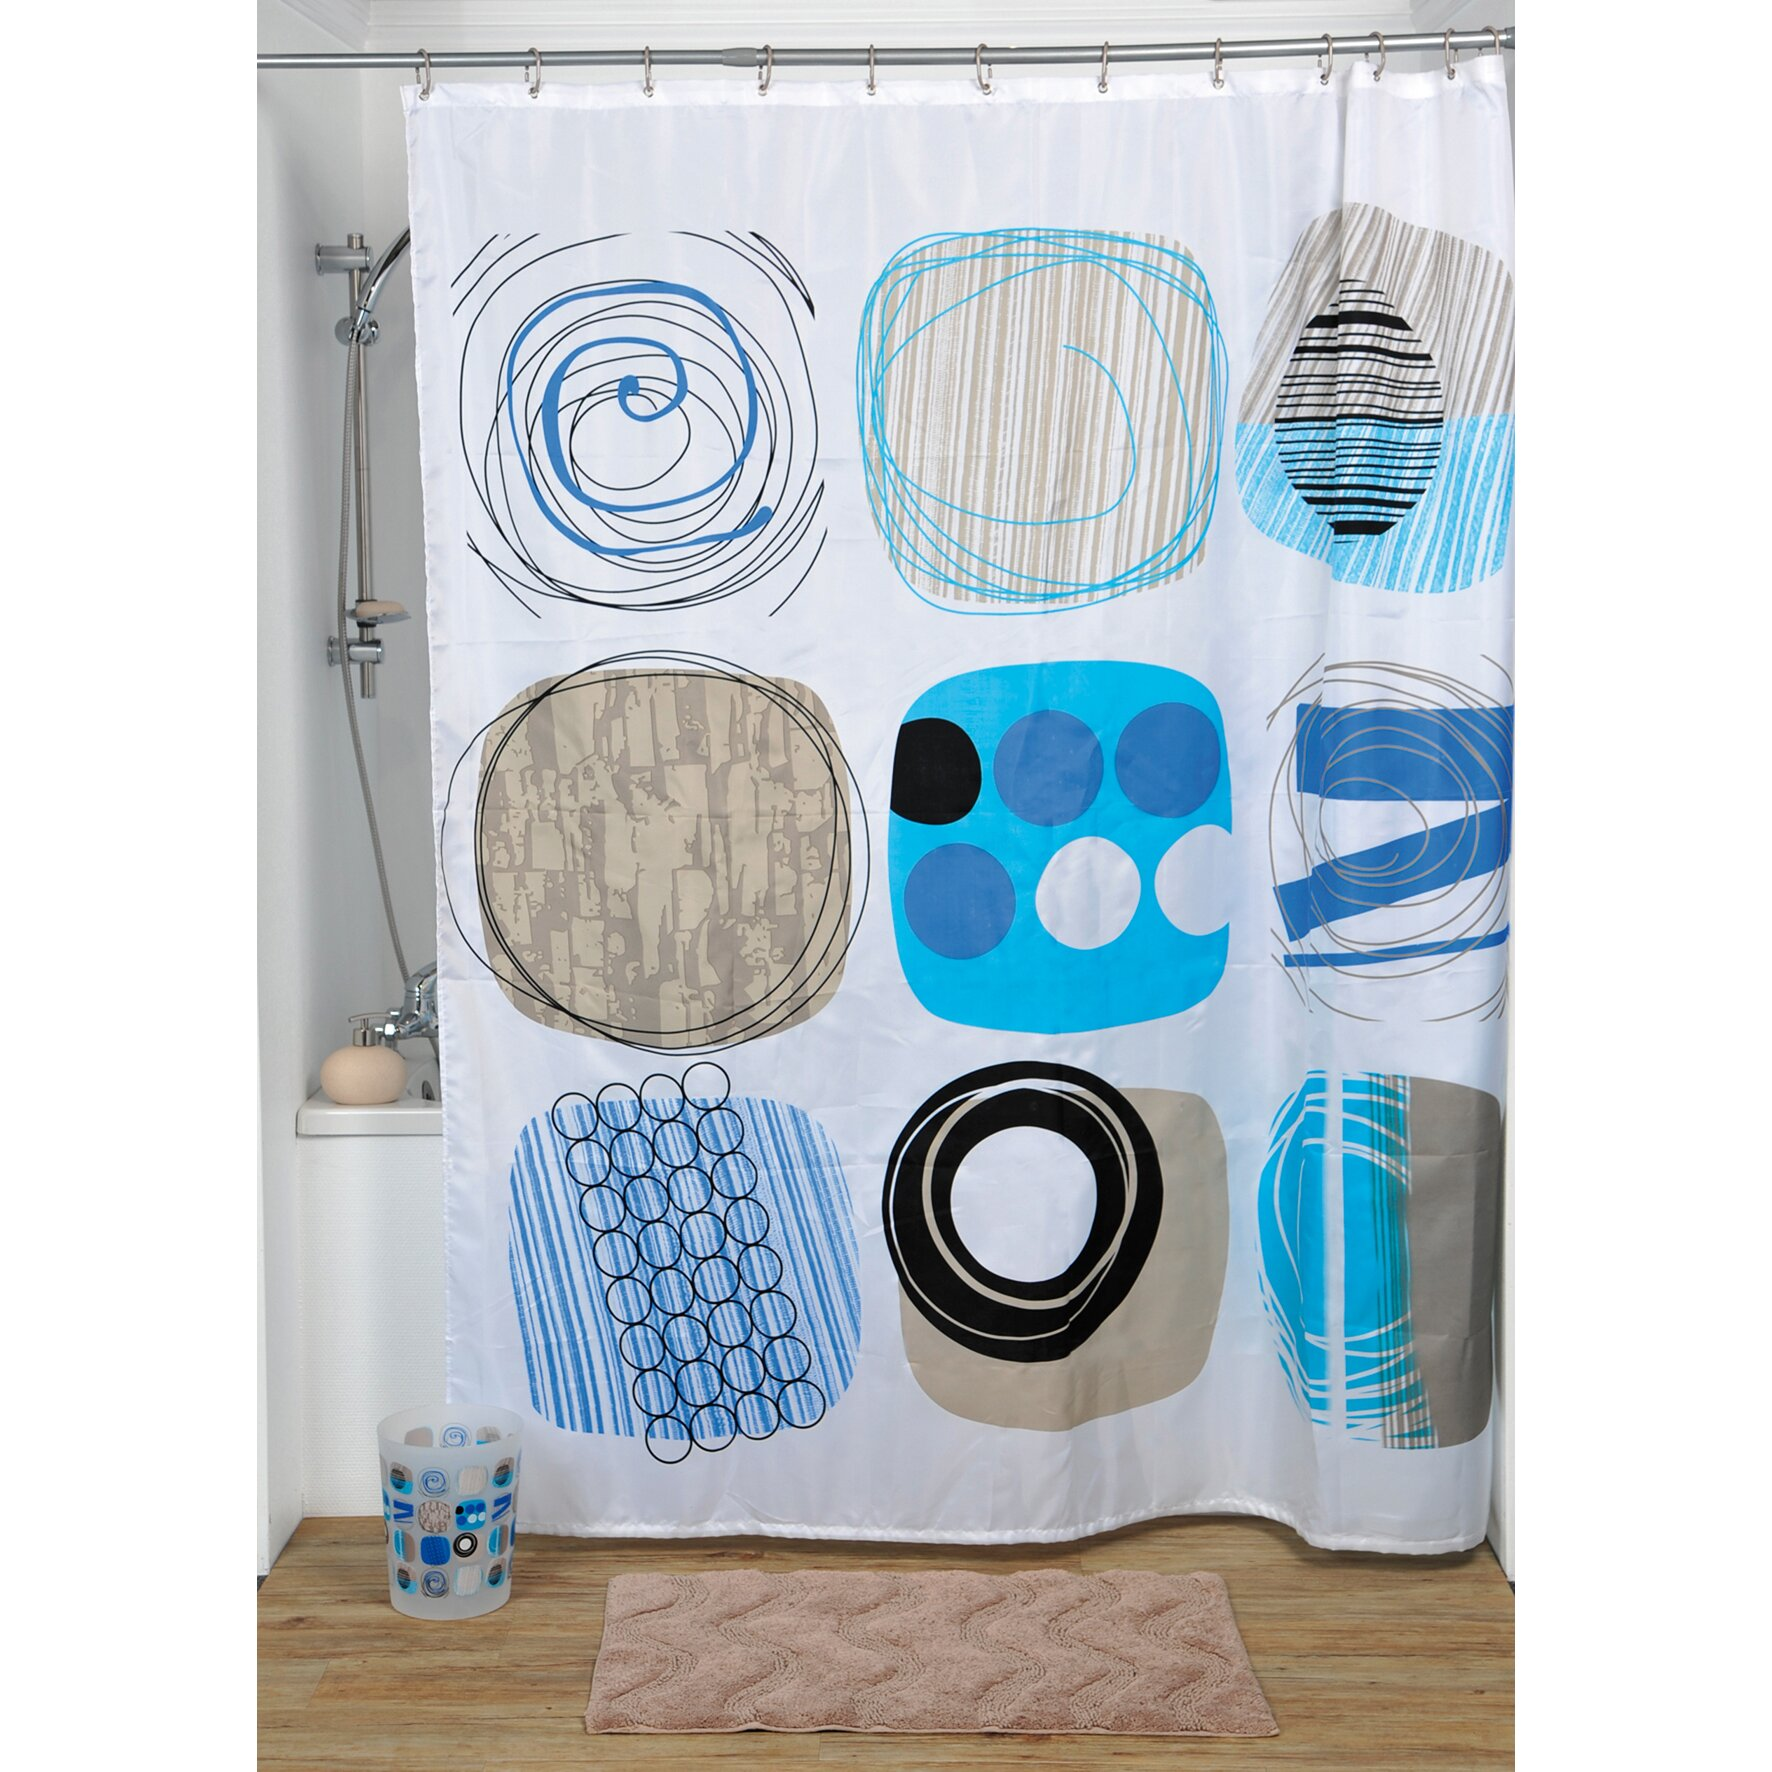 Target bathroom accessories shower curtains - Skull Shower Curtain Target Blue And White Striped Shower Curtain Target Fashionable Shower Curtains Sylve Bathroom